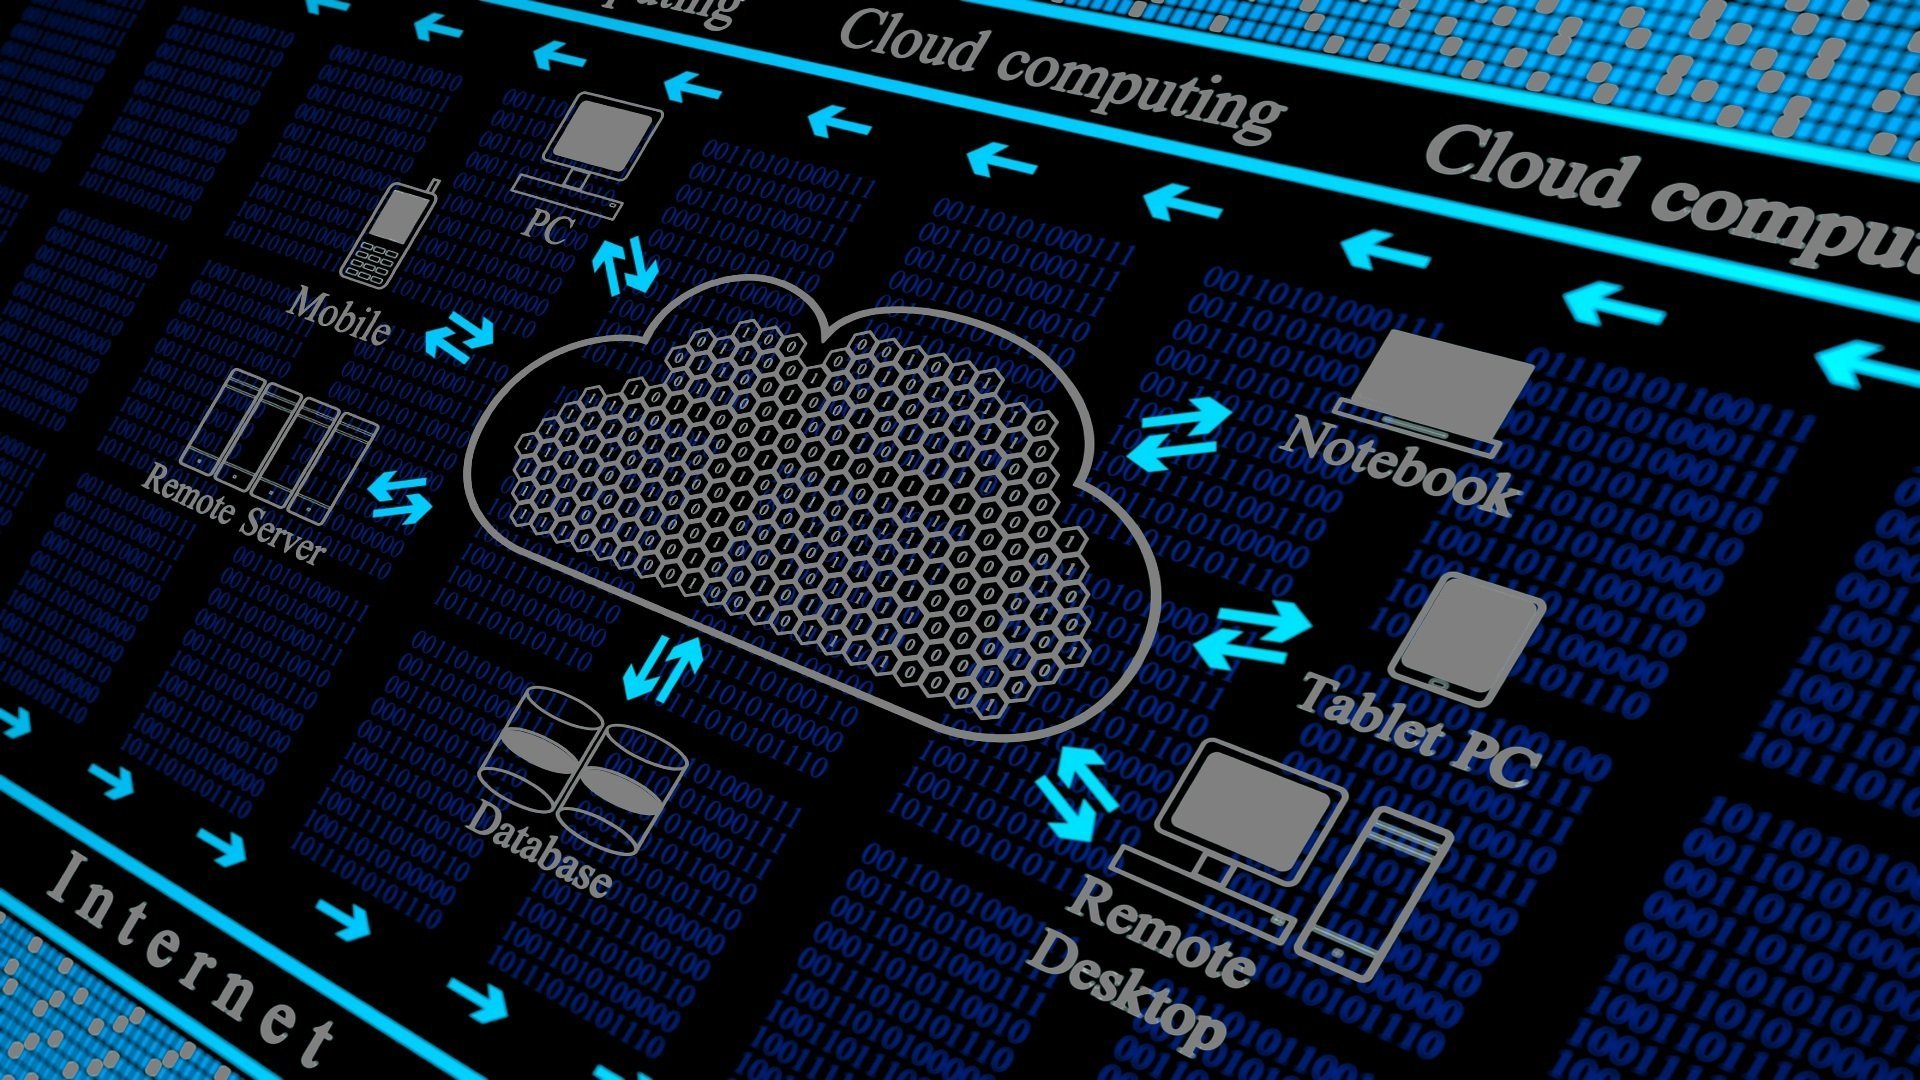 How Cloud technology works